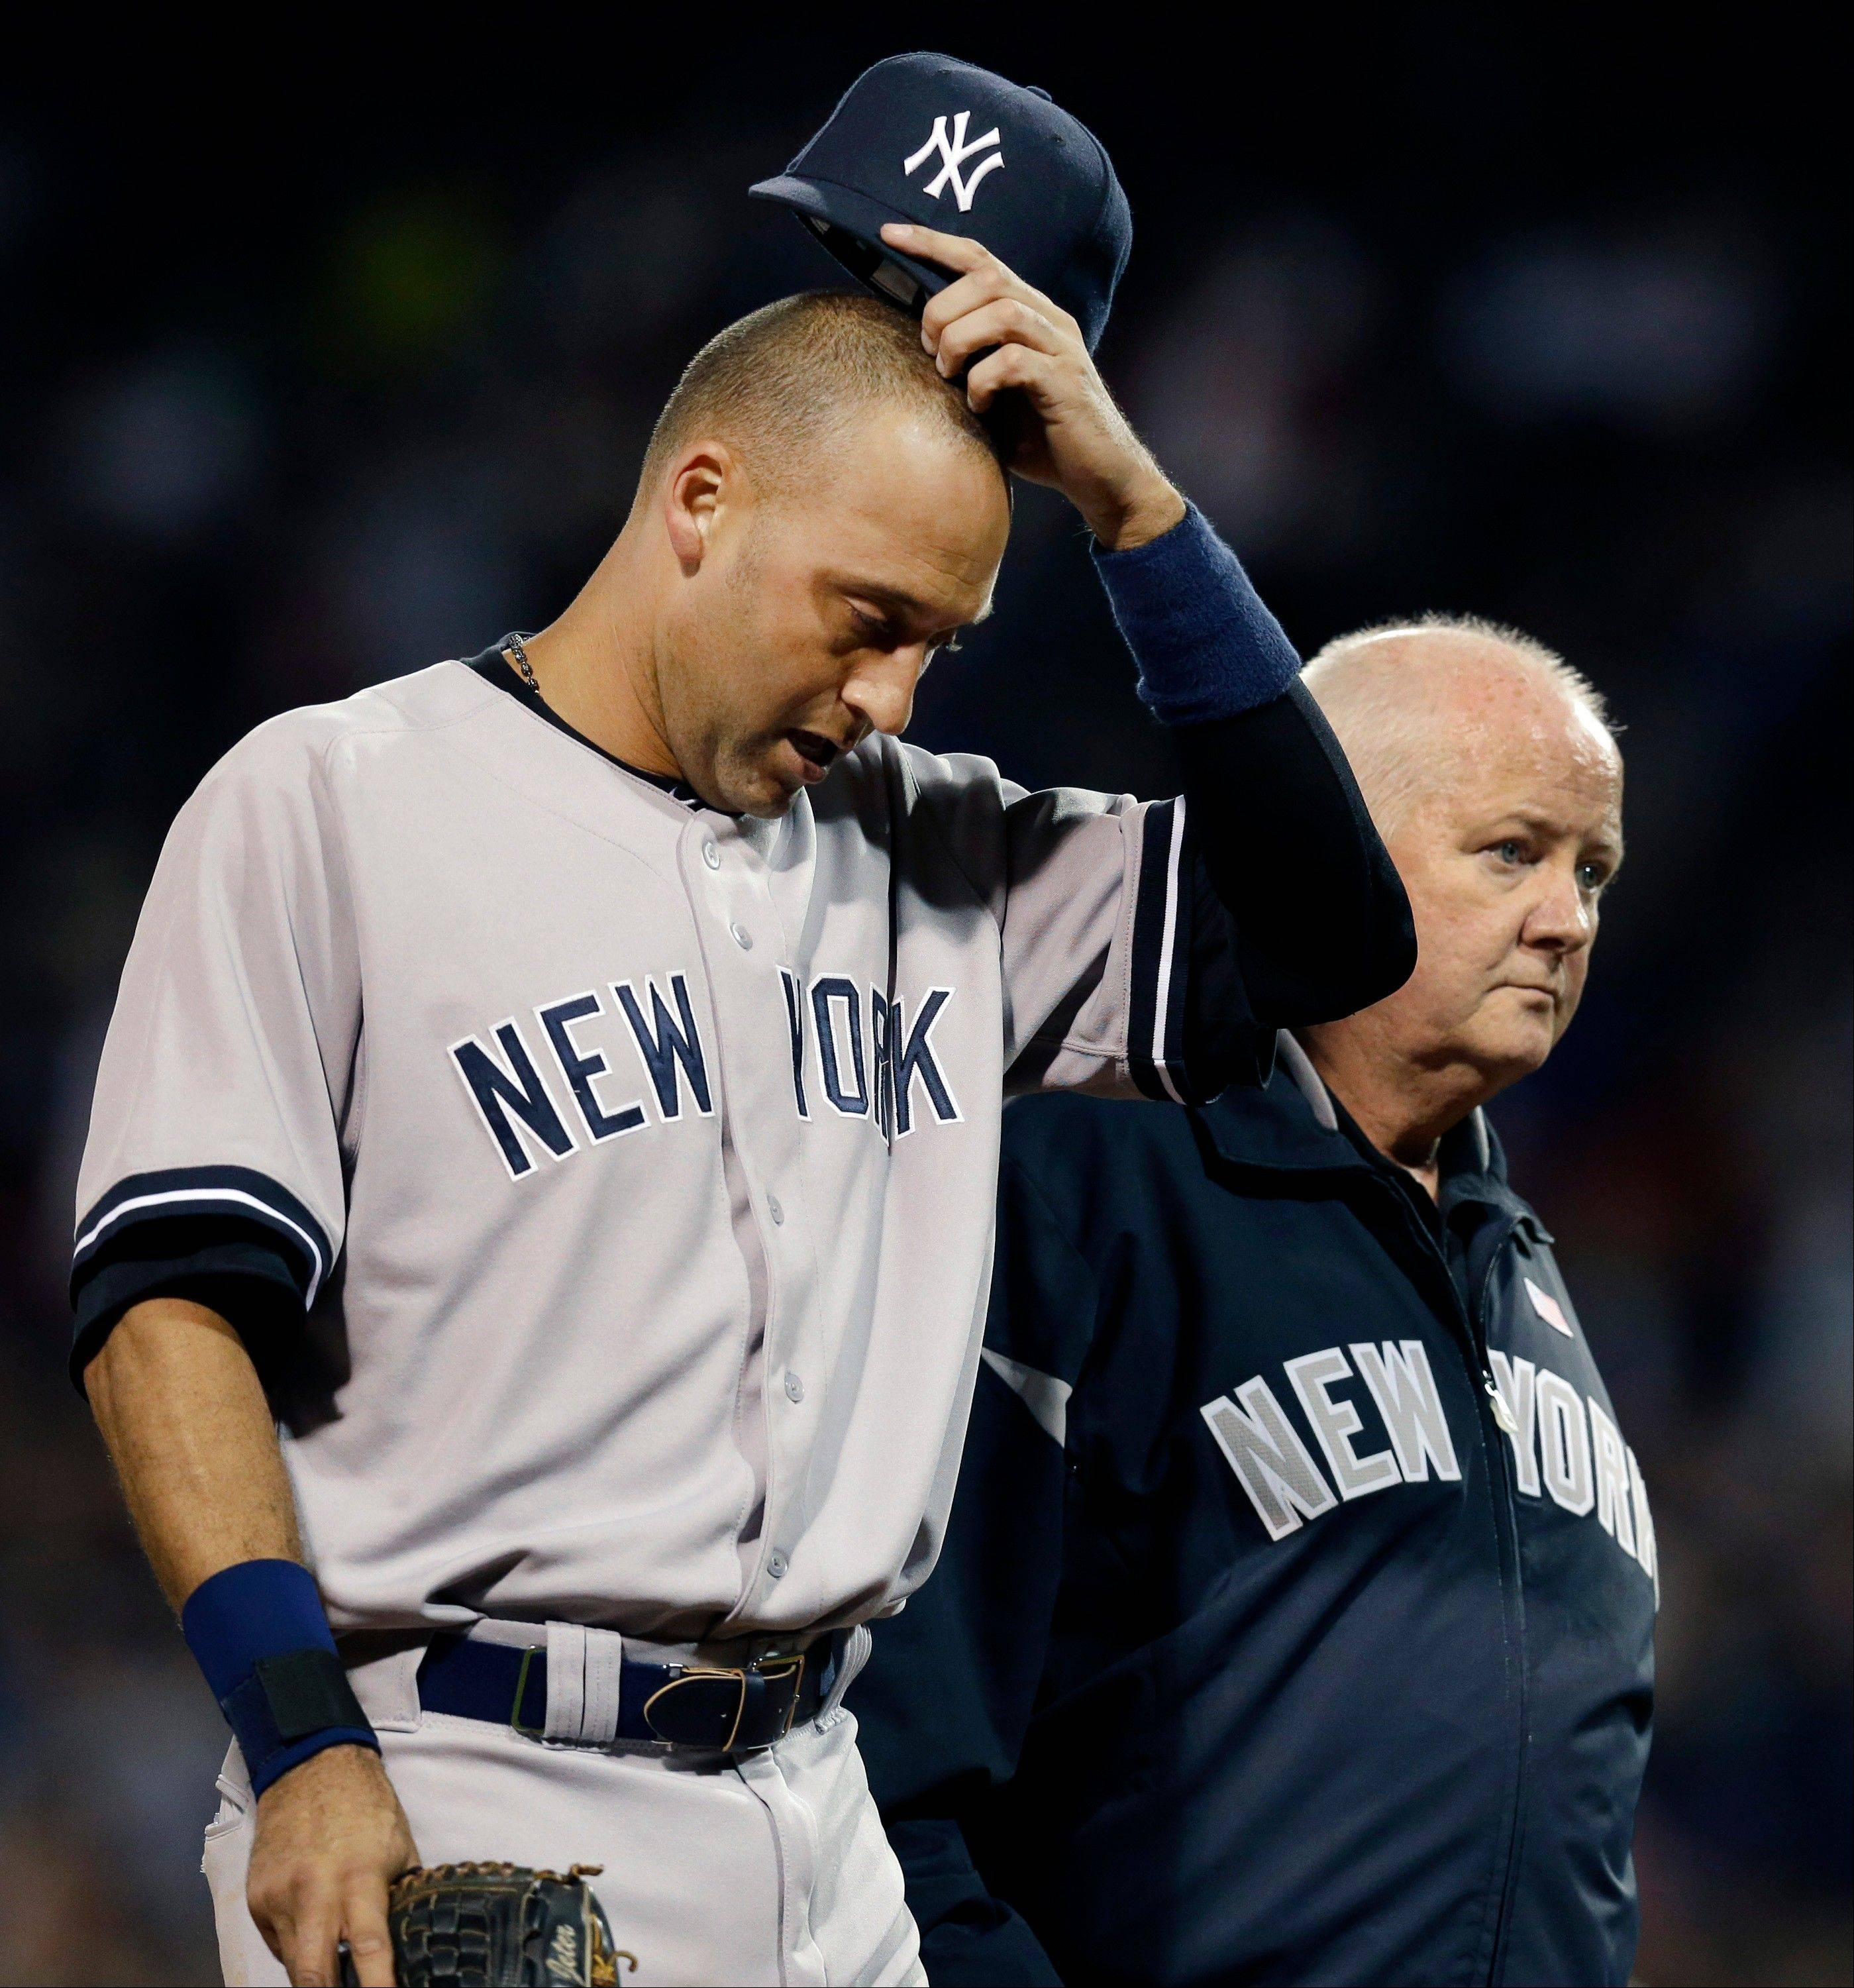 The Yankees� Derek Jeter leaves the game with team trainer Steve Donohue after he was injured trying to beat out a double-play grounder during the eighth inning Wednesday in Boston.